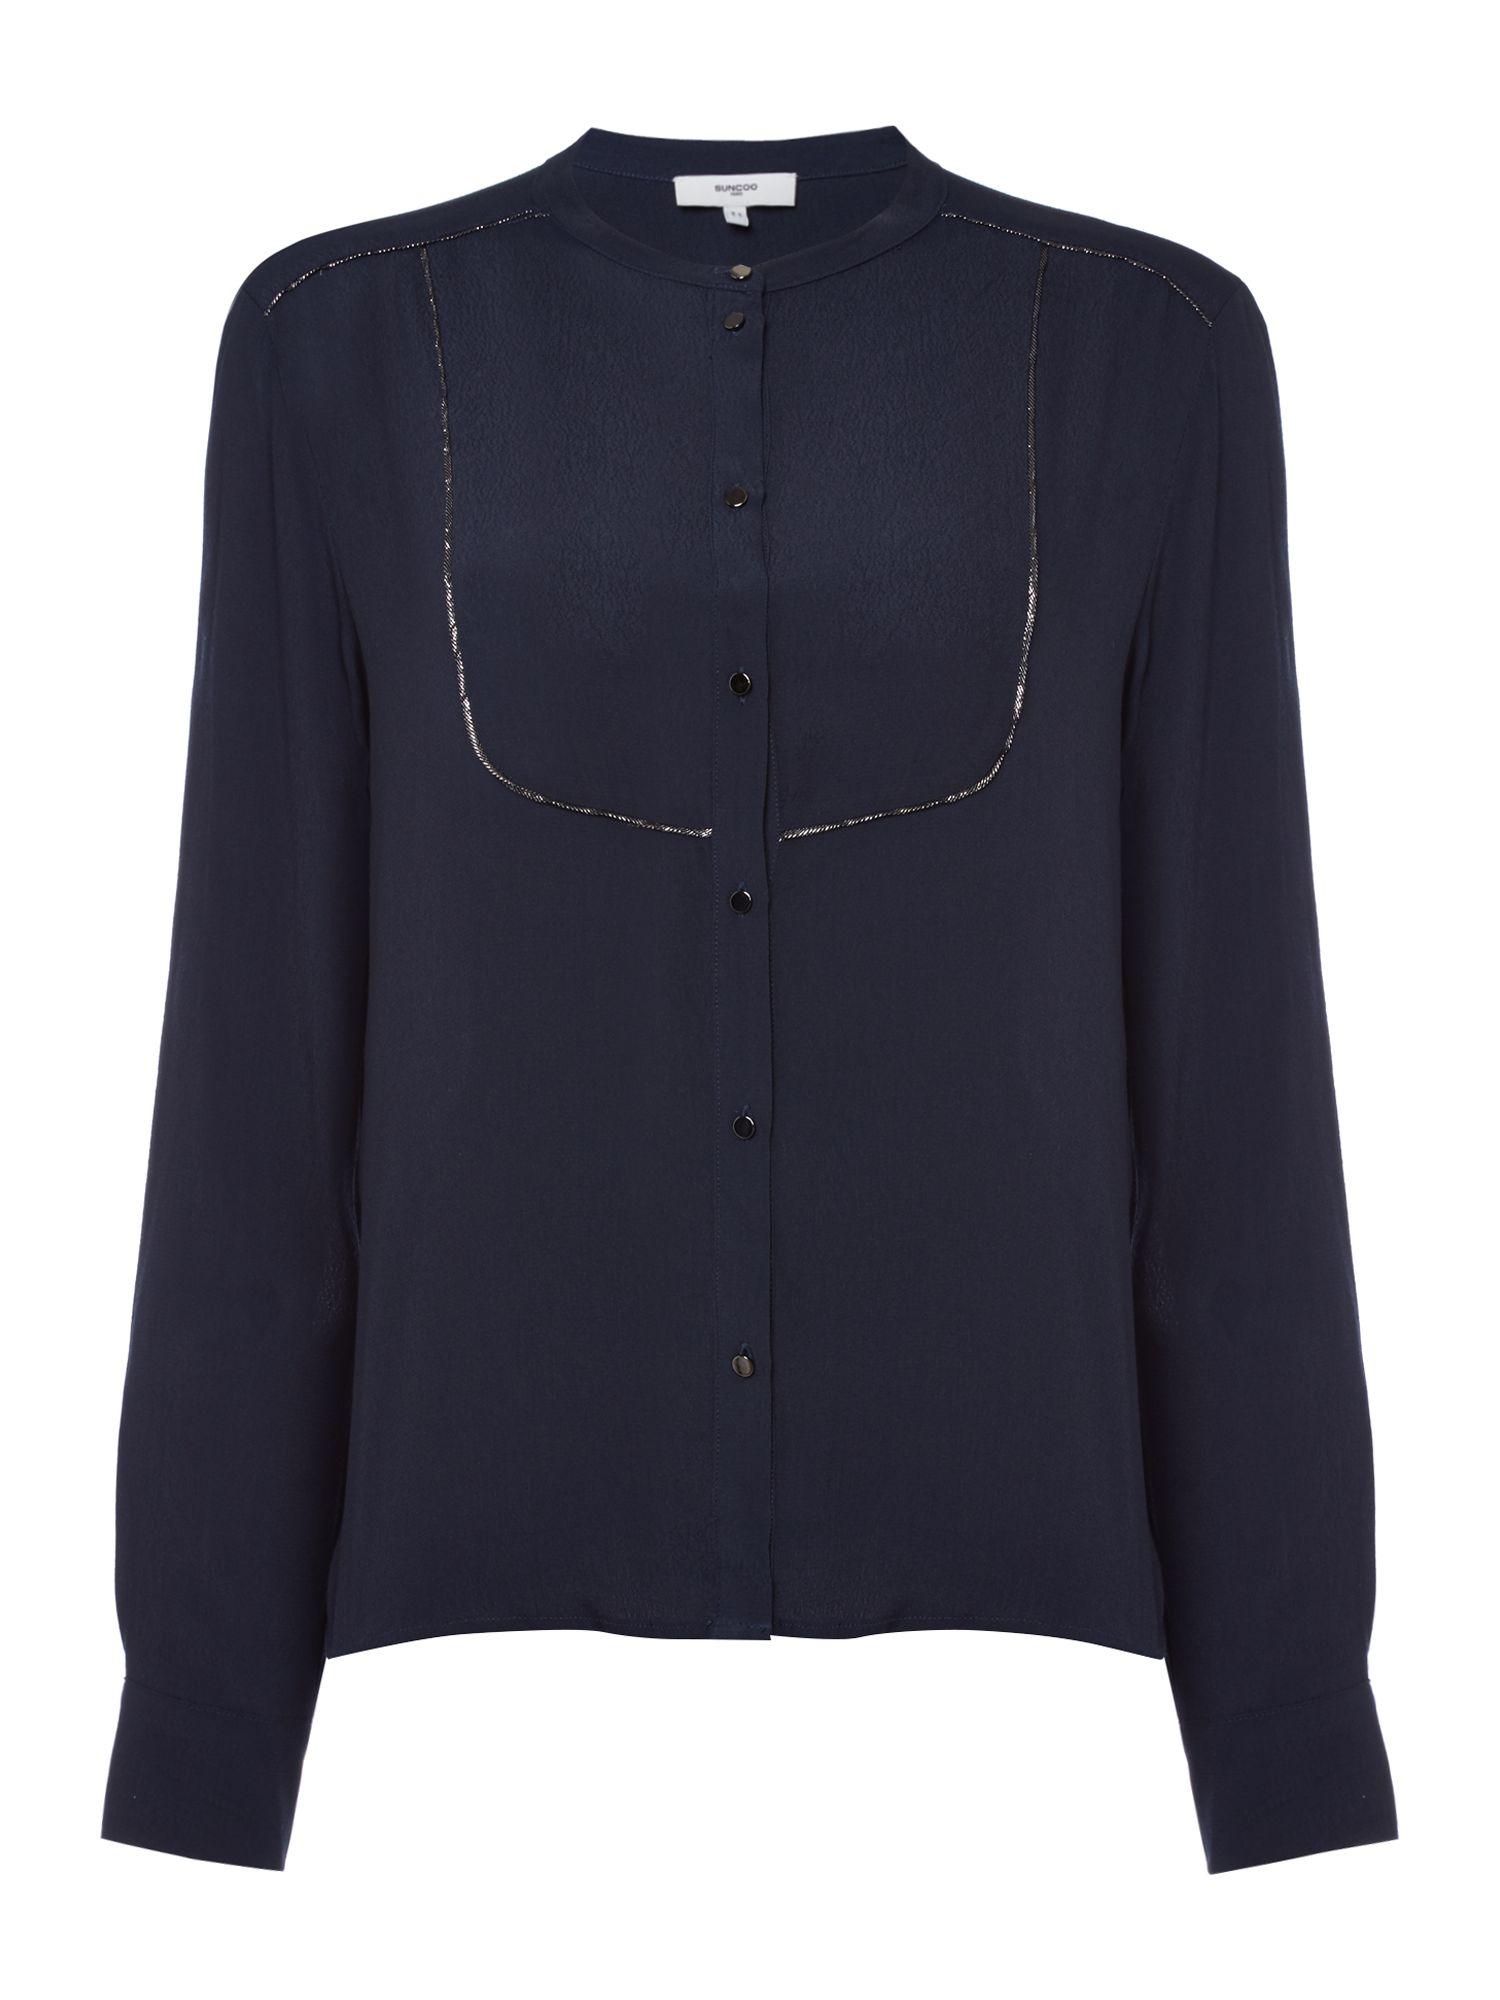 Suncoo Long sleeves Metallic Trim Blouse, Dark Blue